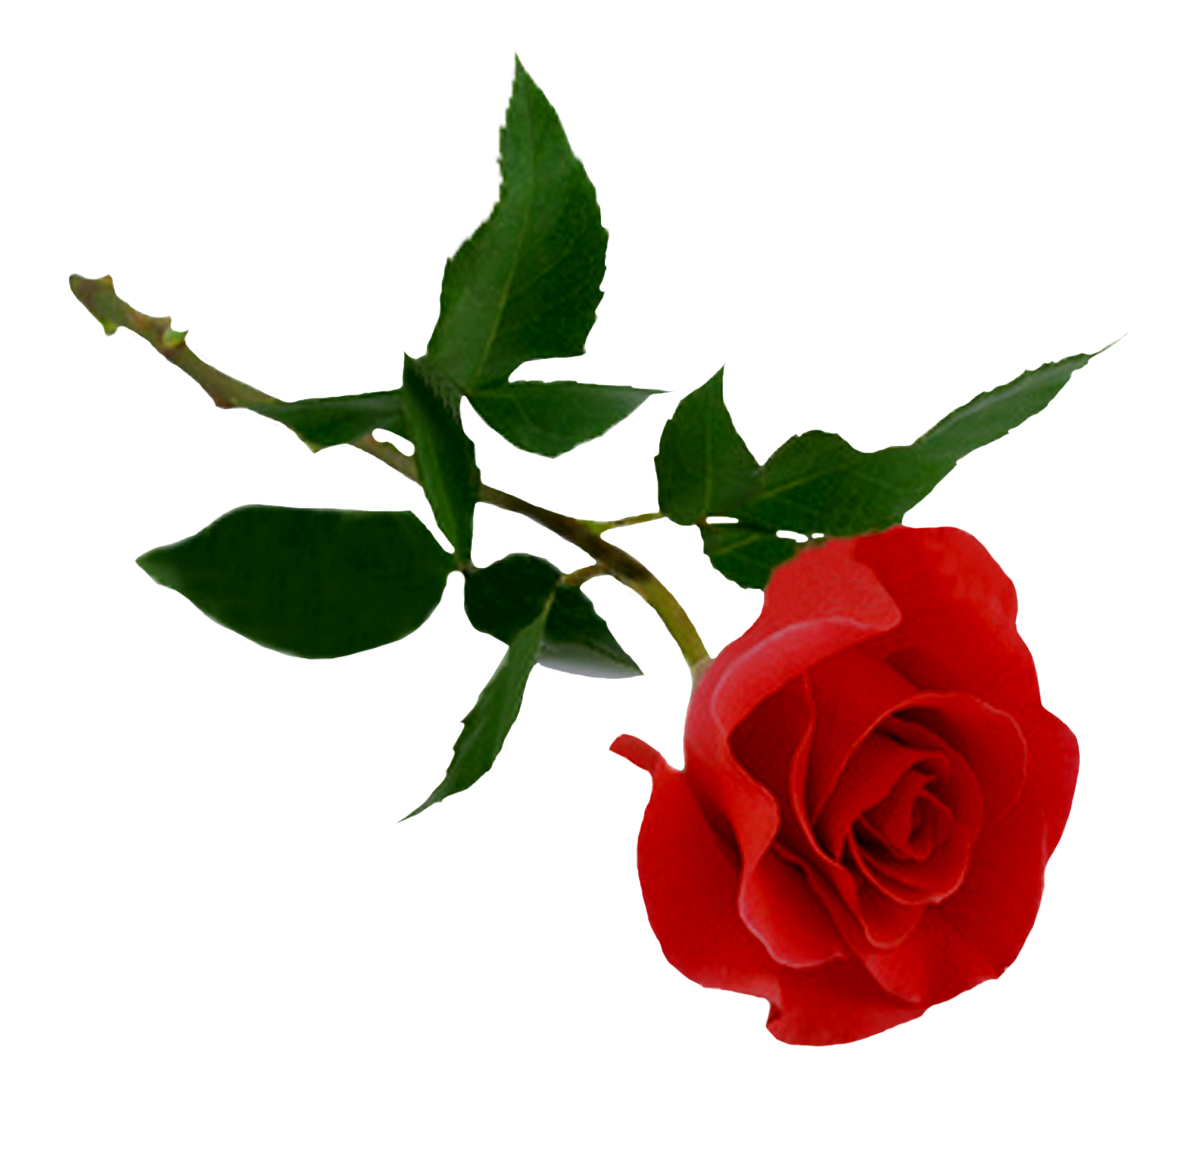 Download PNG image - Rose Png Hd - Rose PNG HD